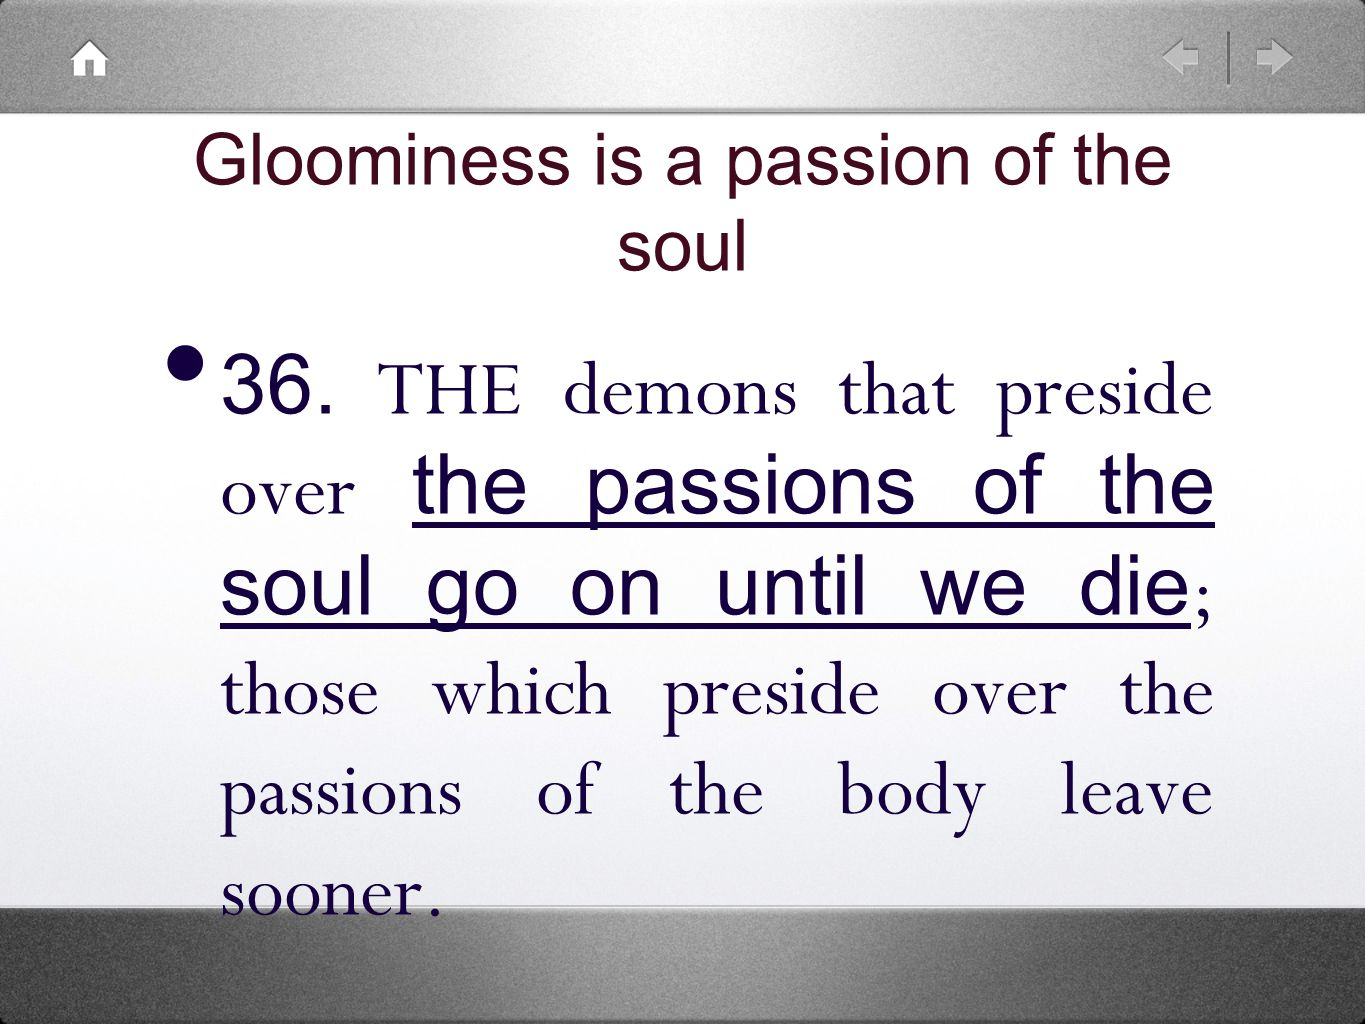 36. THE demons that preside over the passions of the soul go on until we die ; those which preside over the passions of the body leave sooner. Gloomin